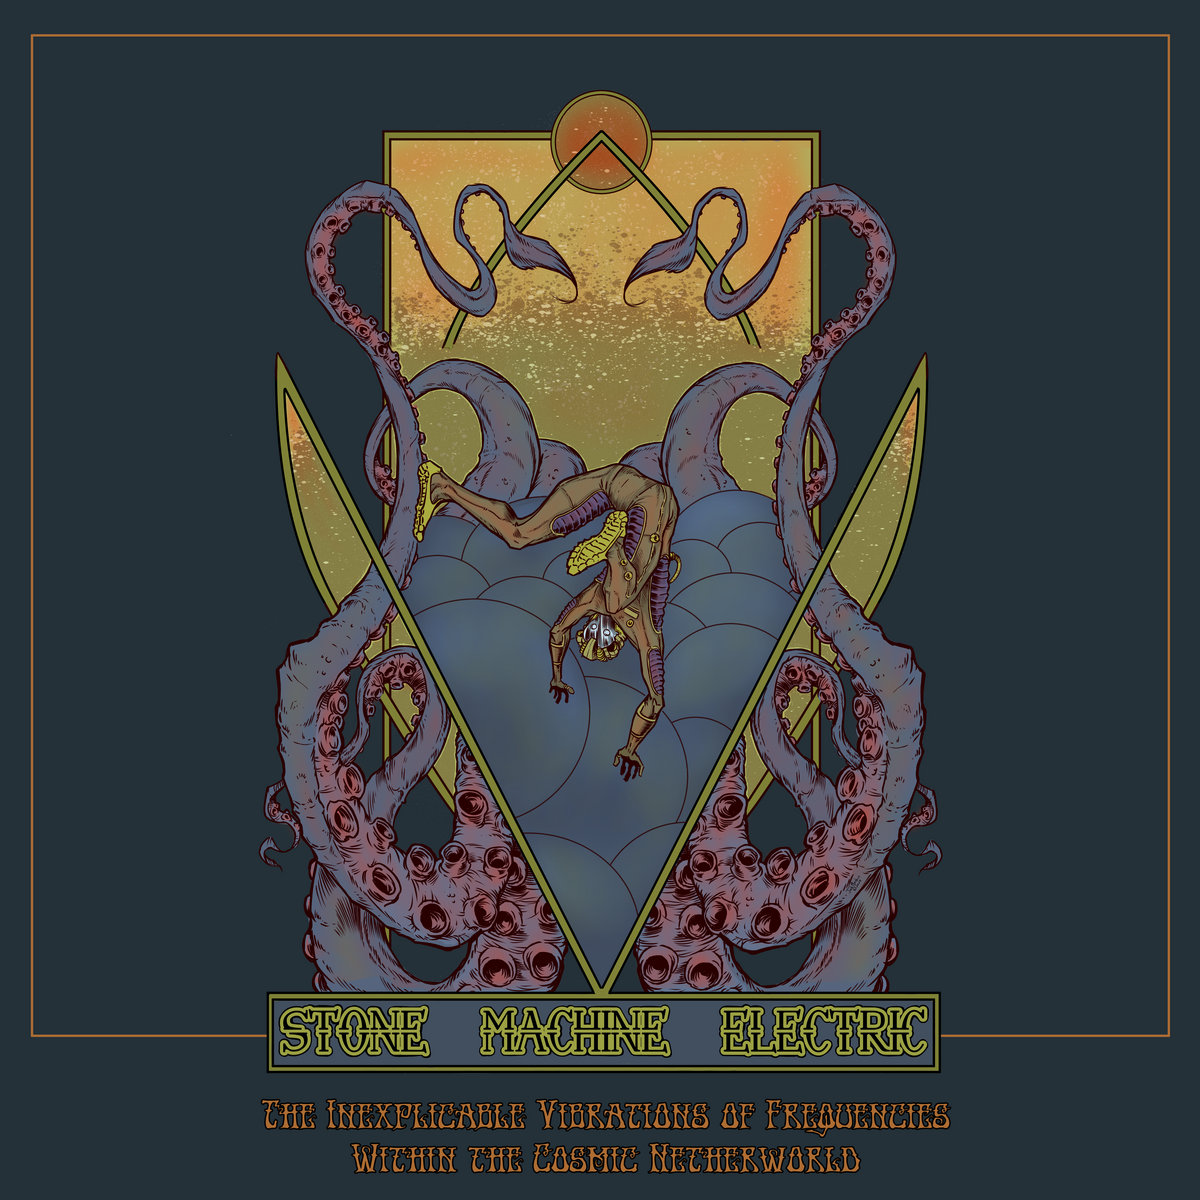 Reseña: STONE MACHINE ELECTRIC.- 'The Inexplicable Vibrations of Frequencies Within the Cosmic Netherworld'